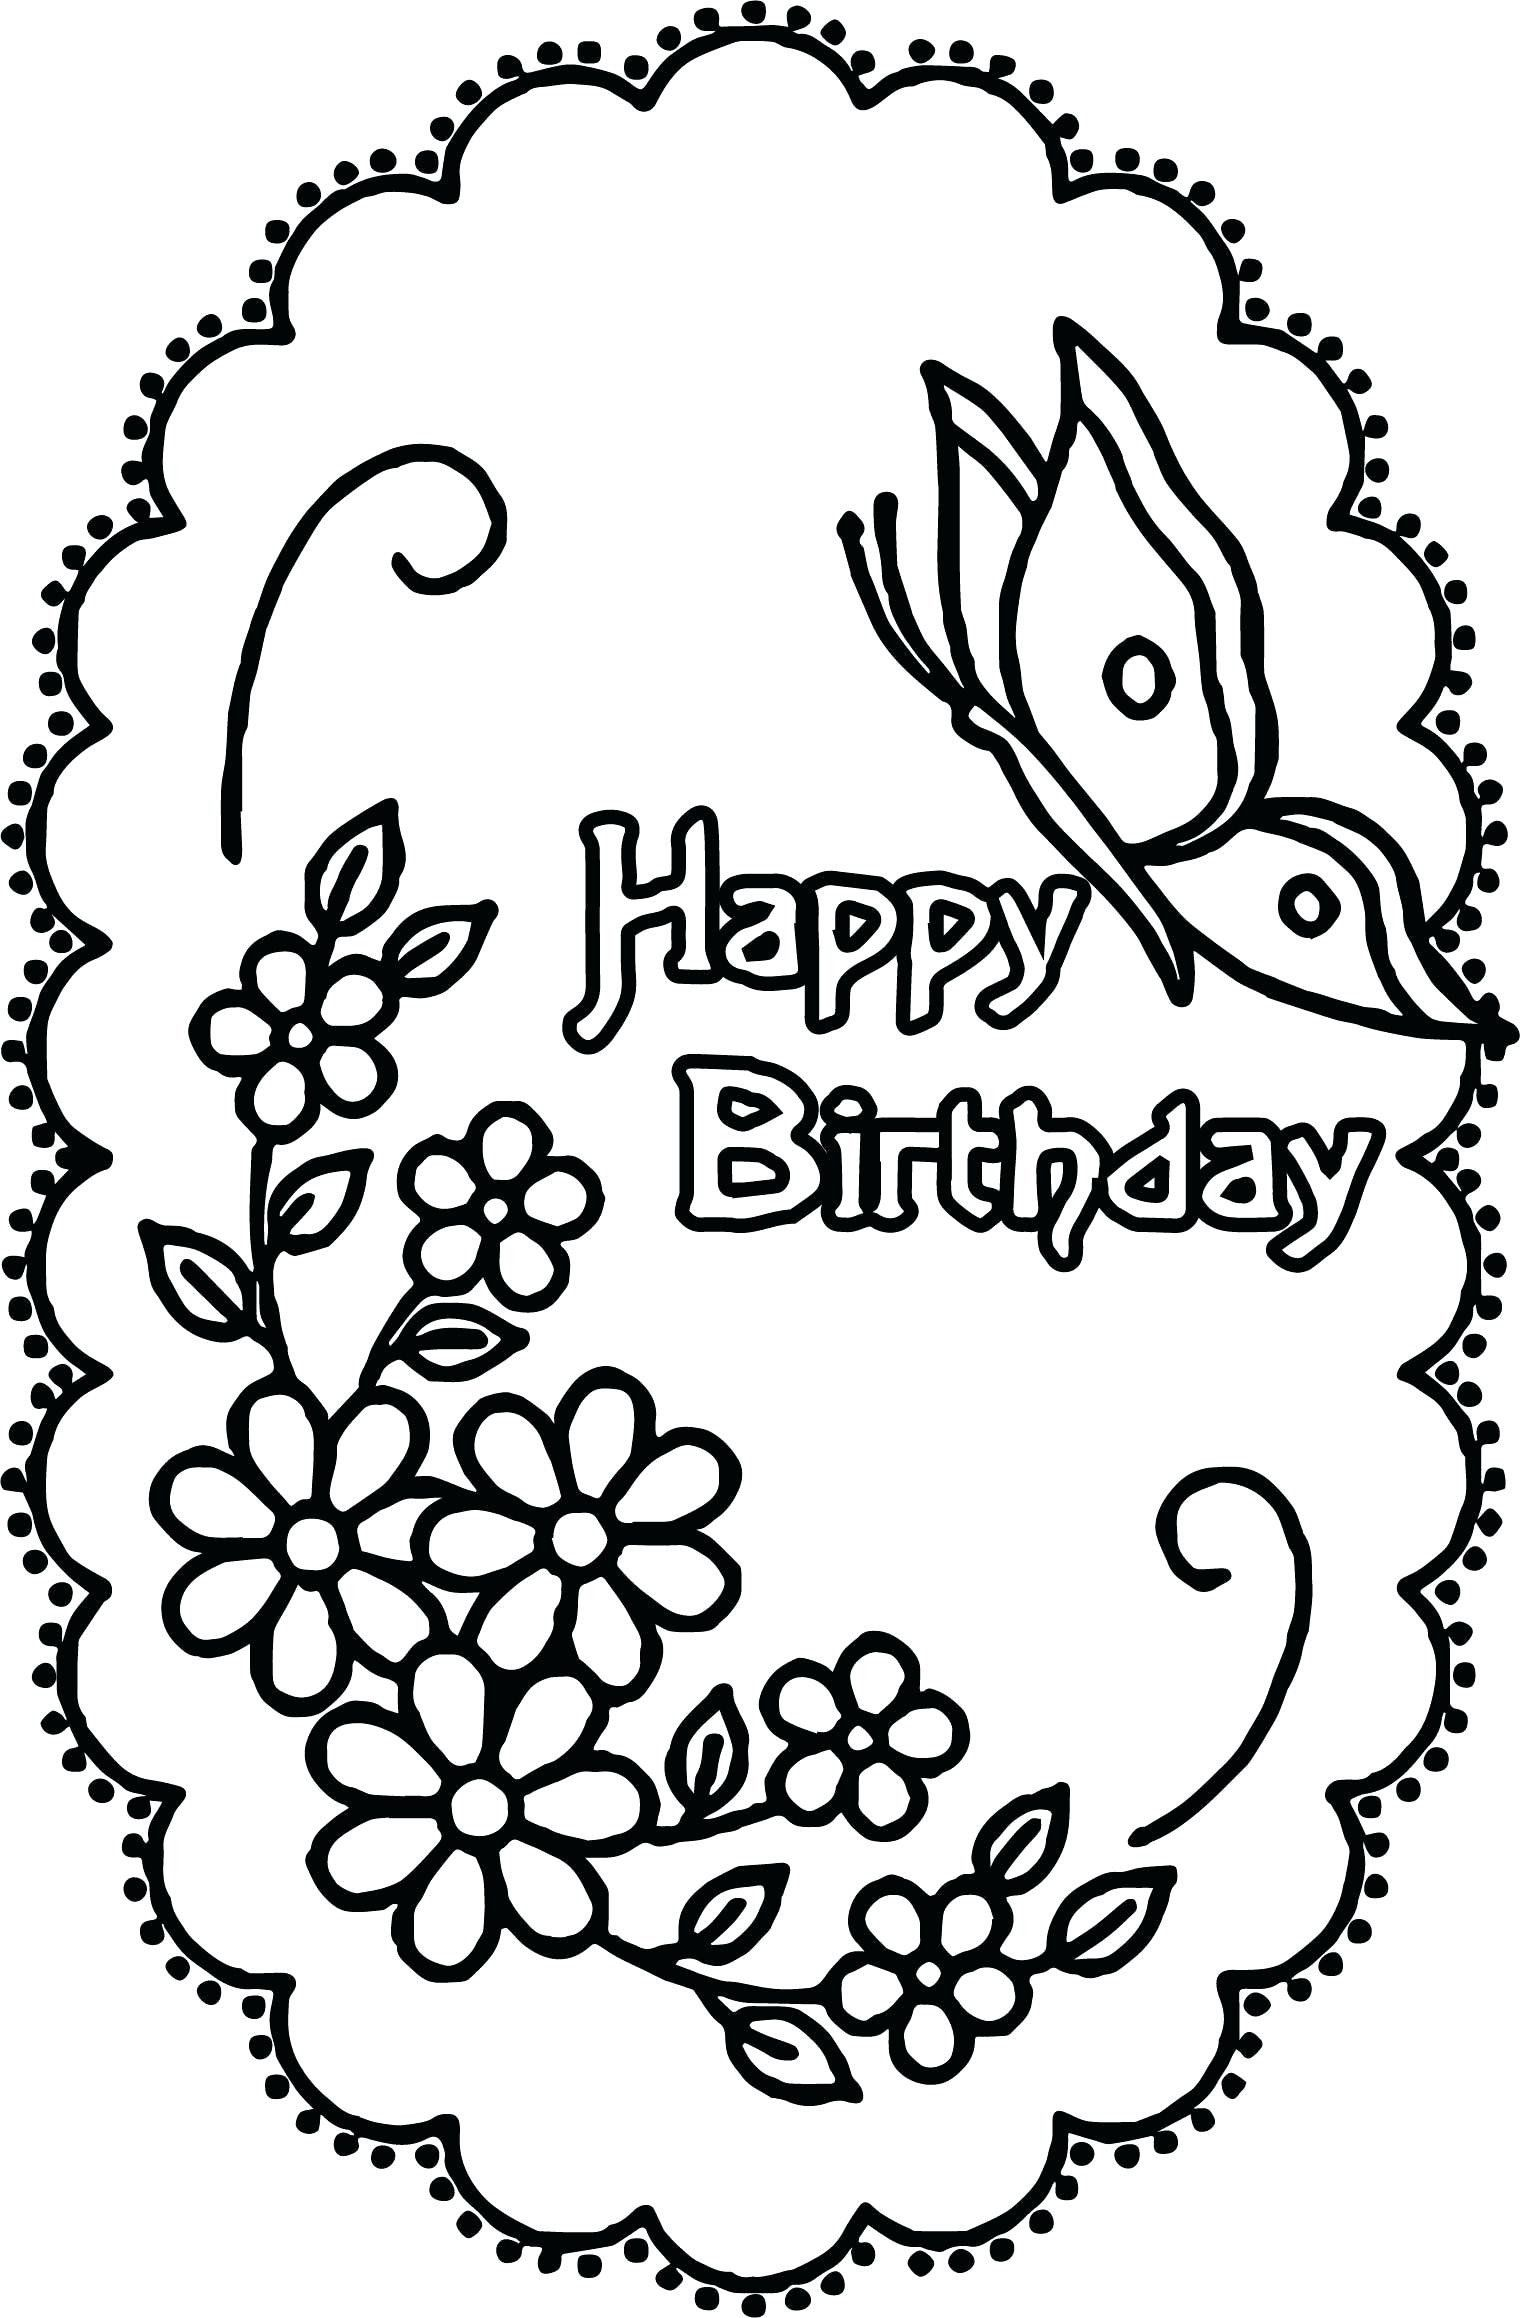 Birthday Coloring Pages For Grandma Coloring Pages Coloring Happy Birthday Grandm Birthday Coloring Pages Happy Birthday Coloring Pages Butterfly Coloring Page